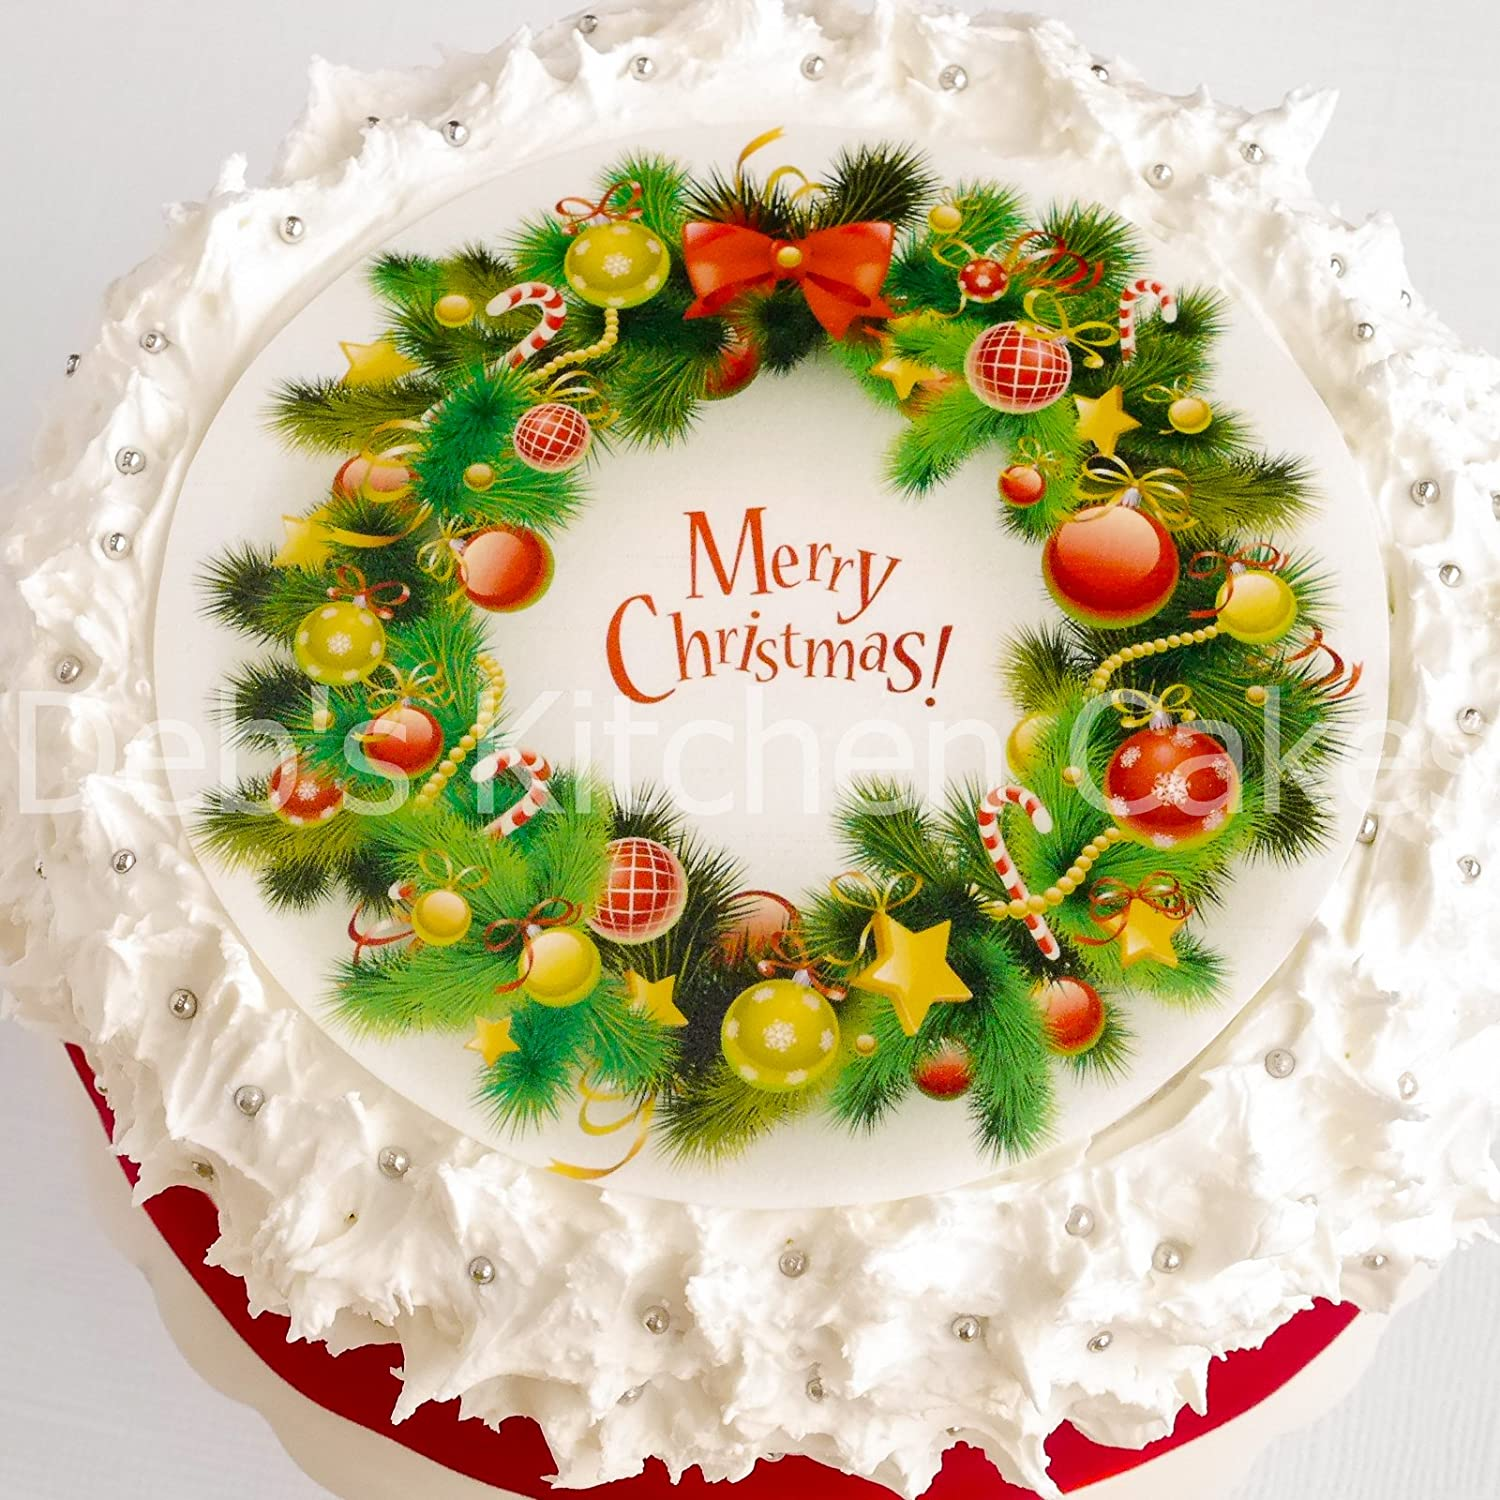 christmas cake topper merry christmas wreath cake decoration edible icing or wafer 75